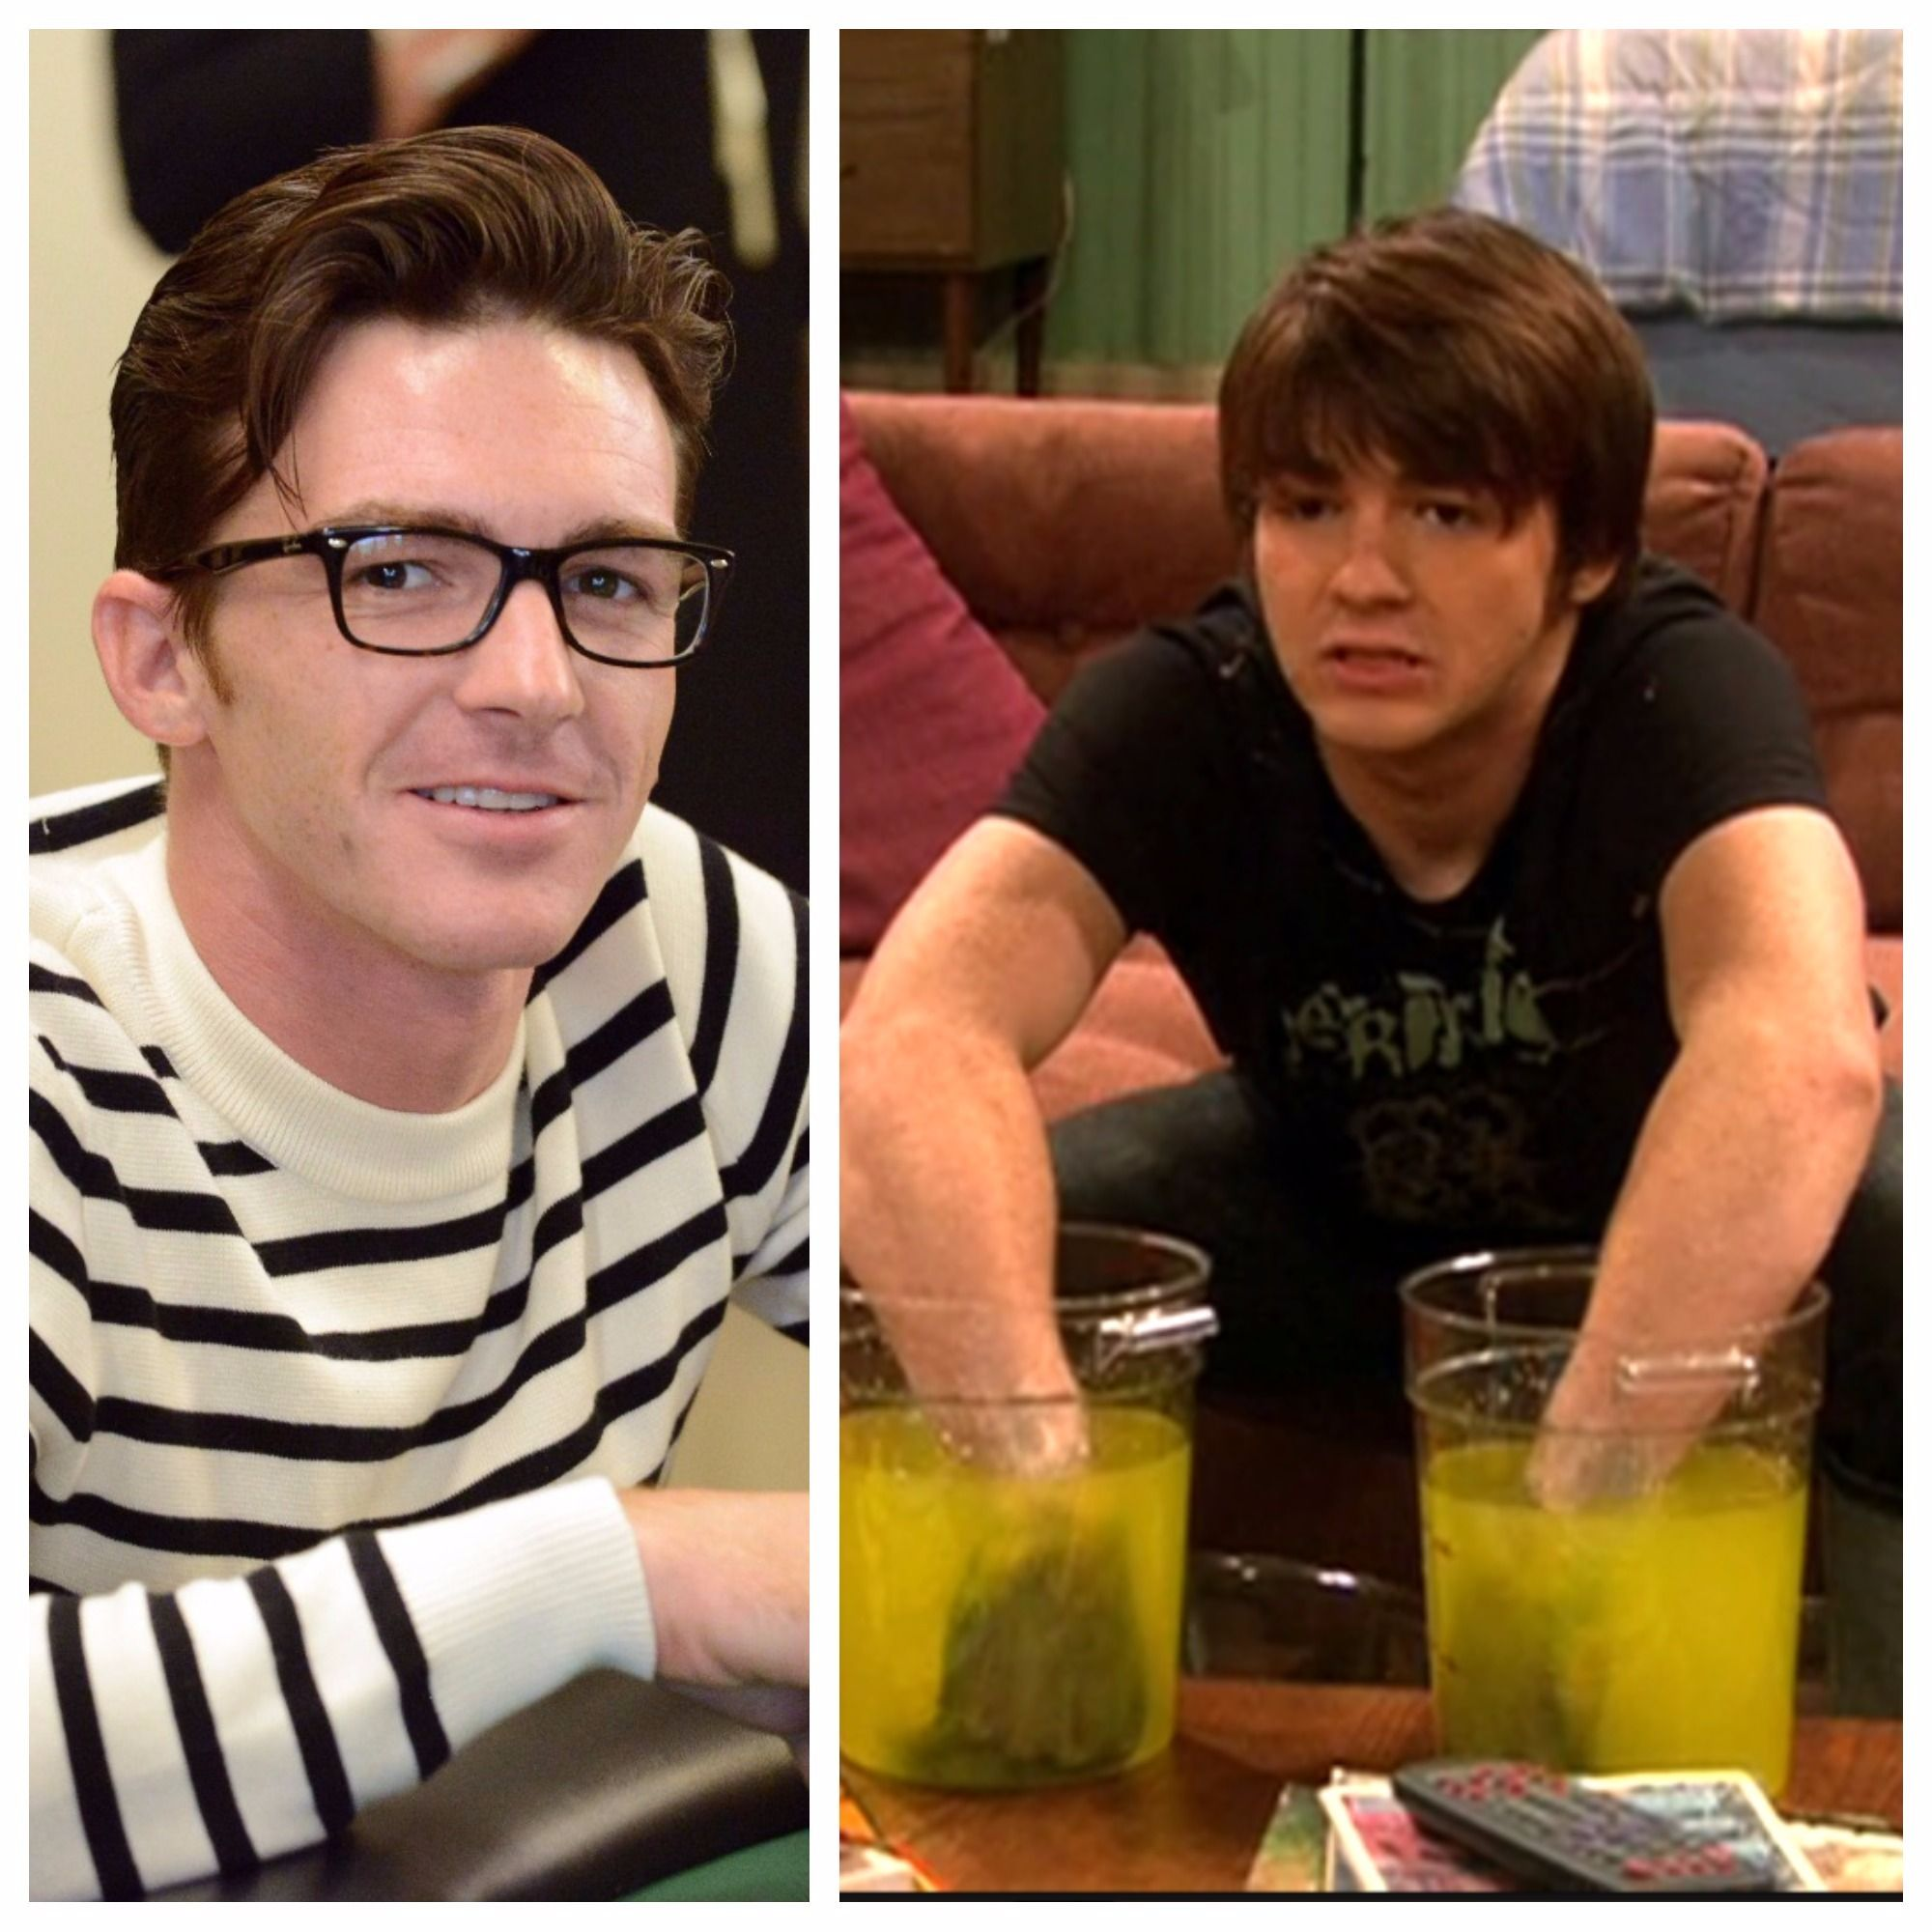 drake bell s epic drake josh reference is better than owning a